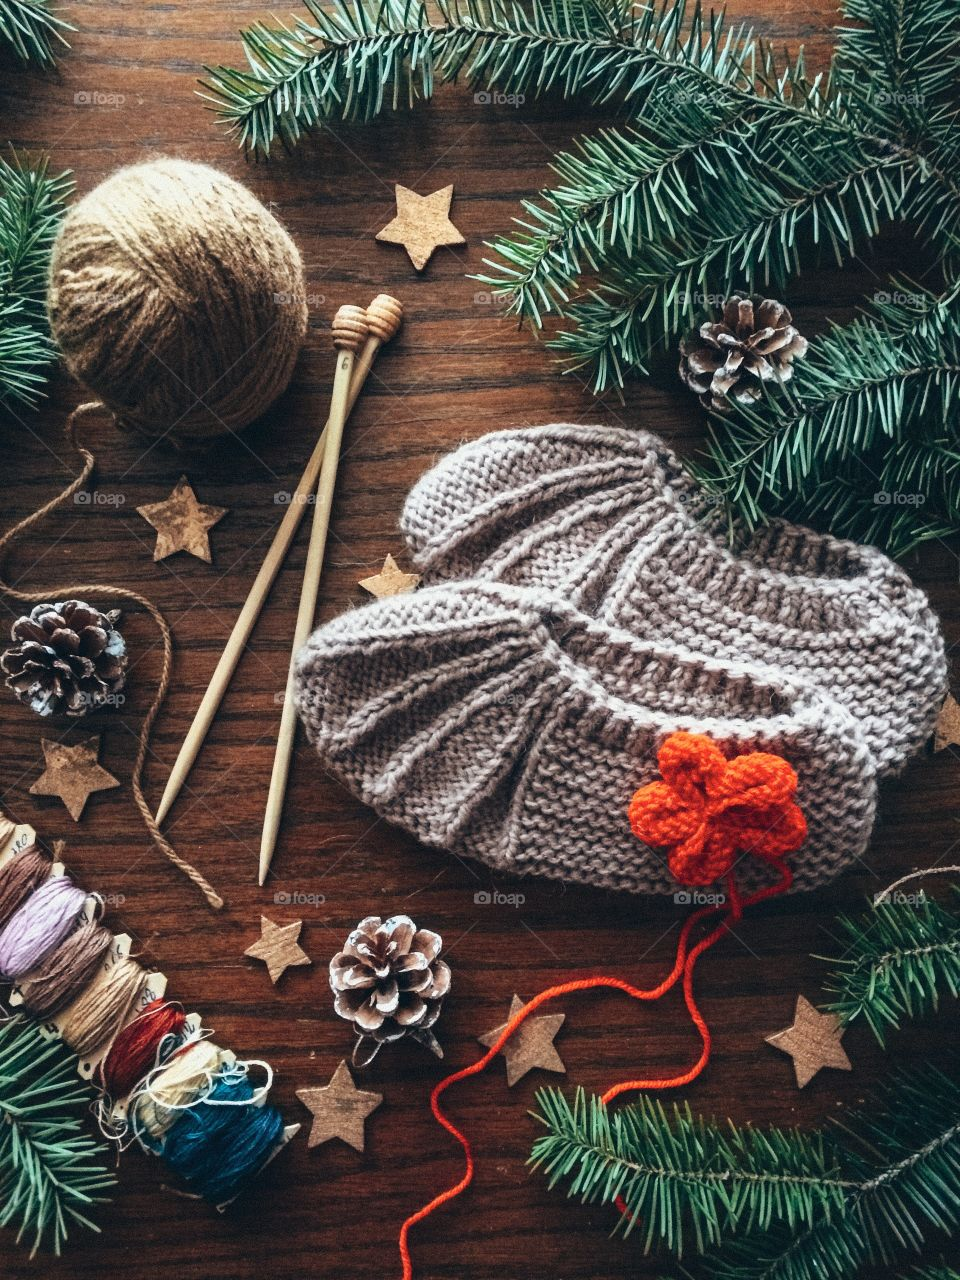 I love knitting and I definitely want to do that more this year. Scarfs, hats, sweaters, cute socks, I will make them all!